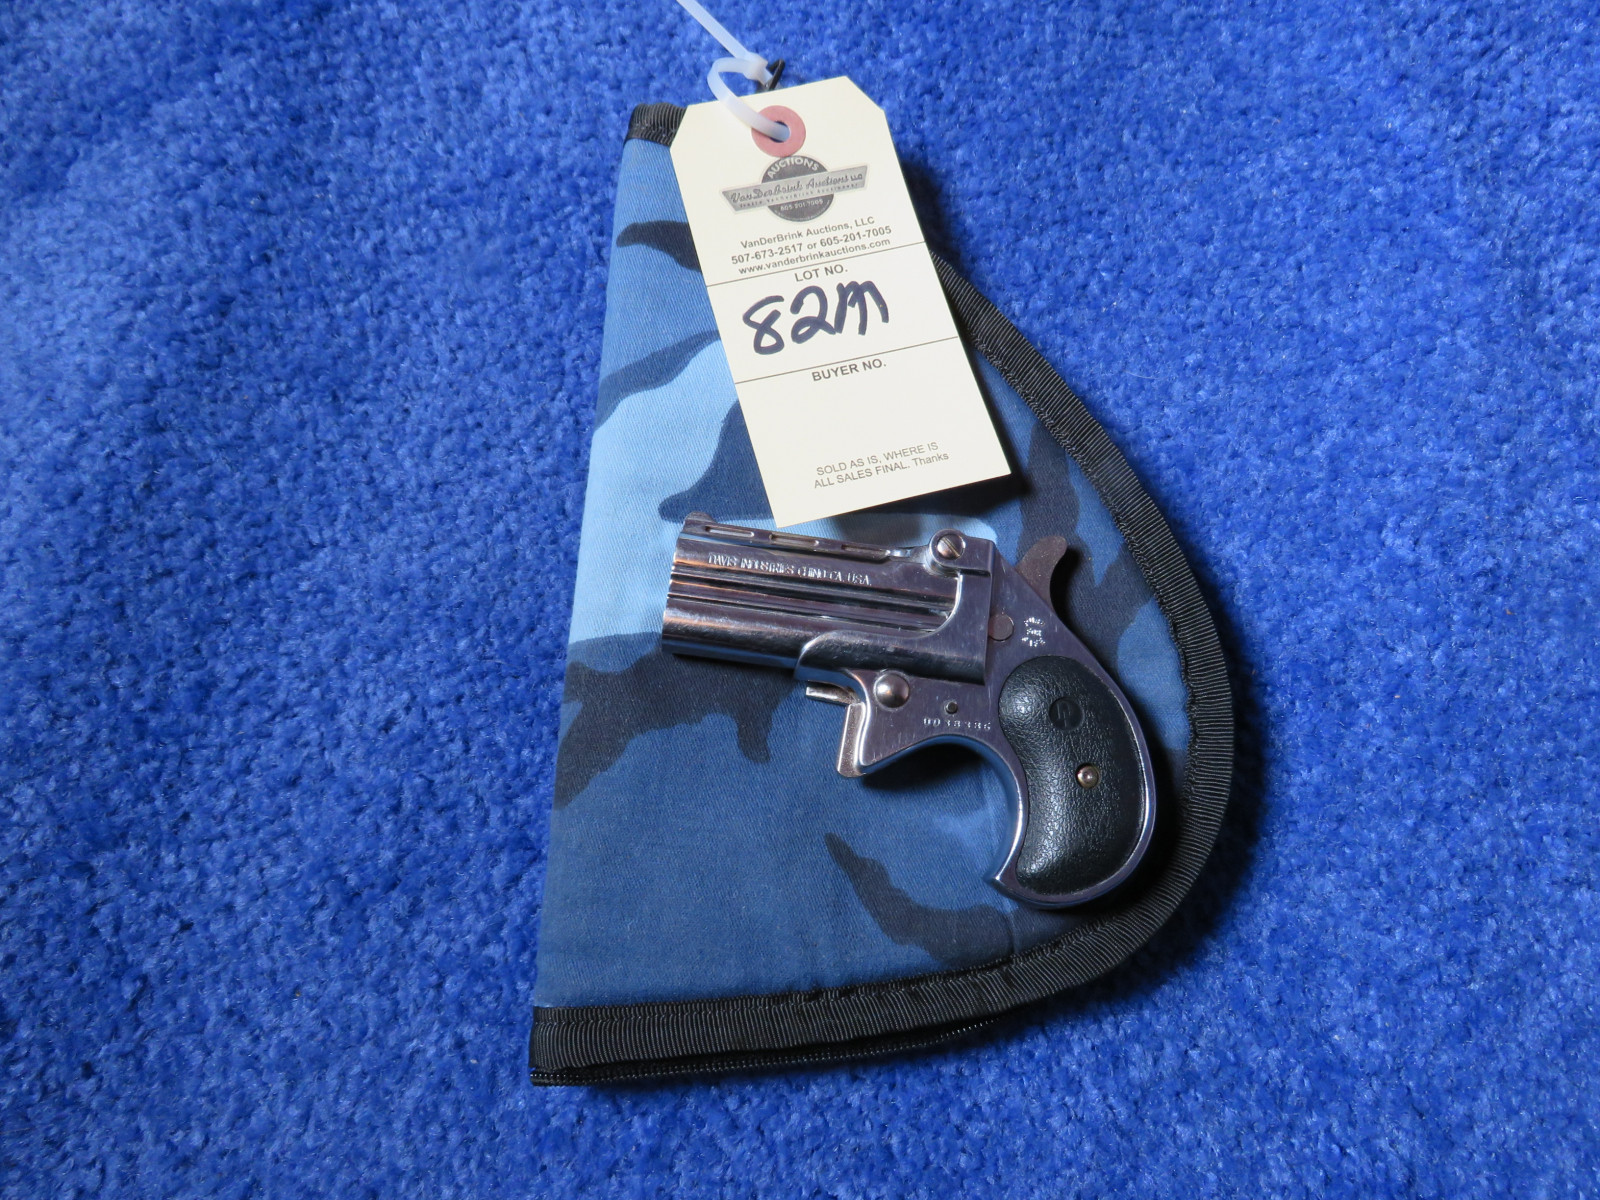 Davis Industries Model D38  .38 Special Handgun - Image 3